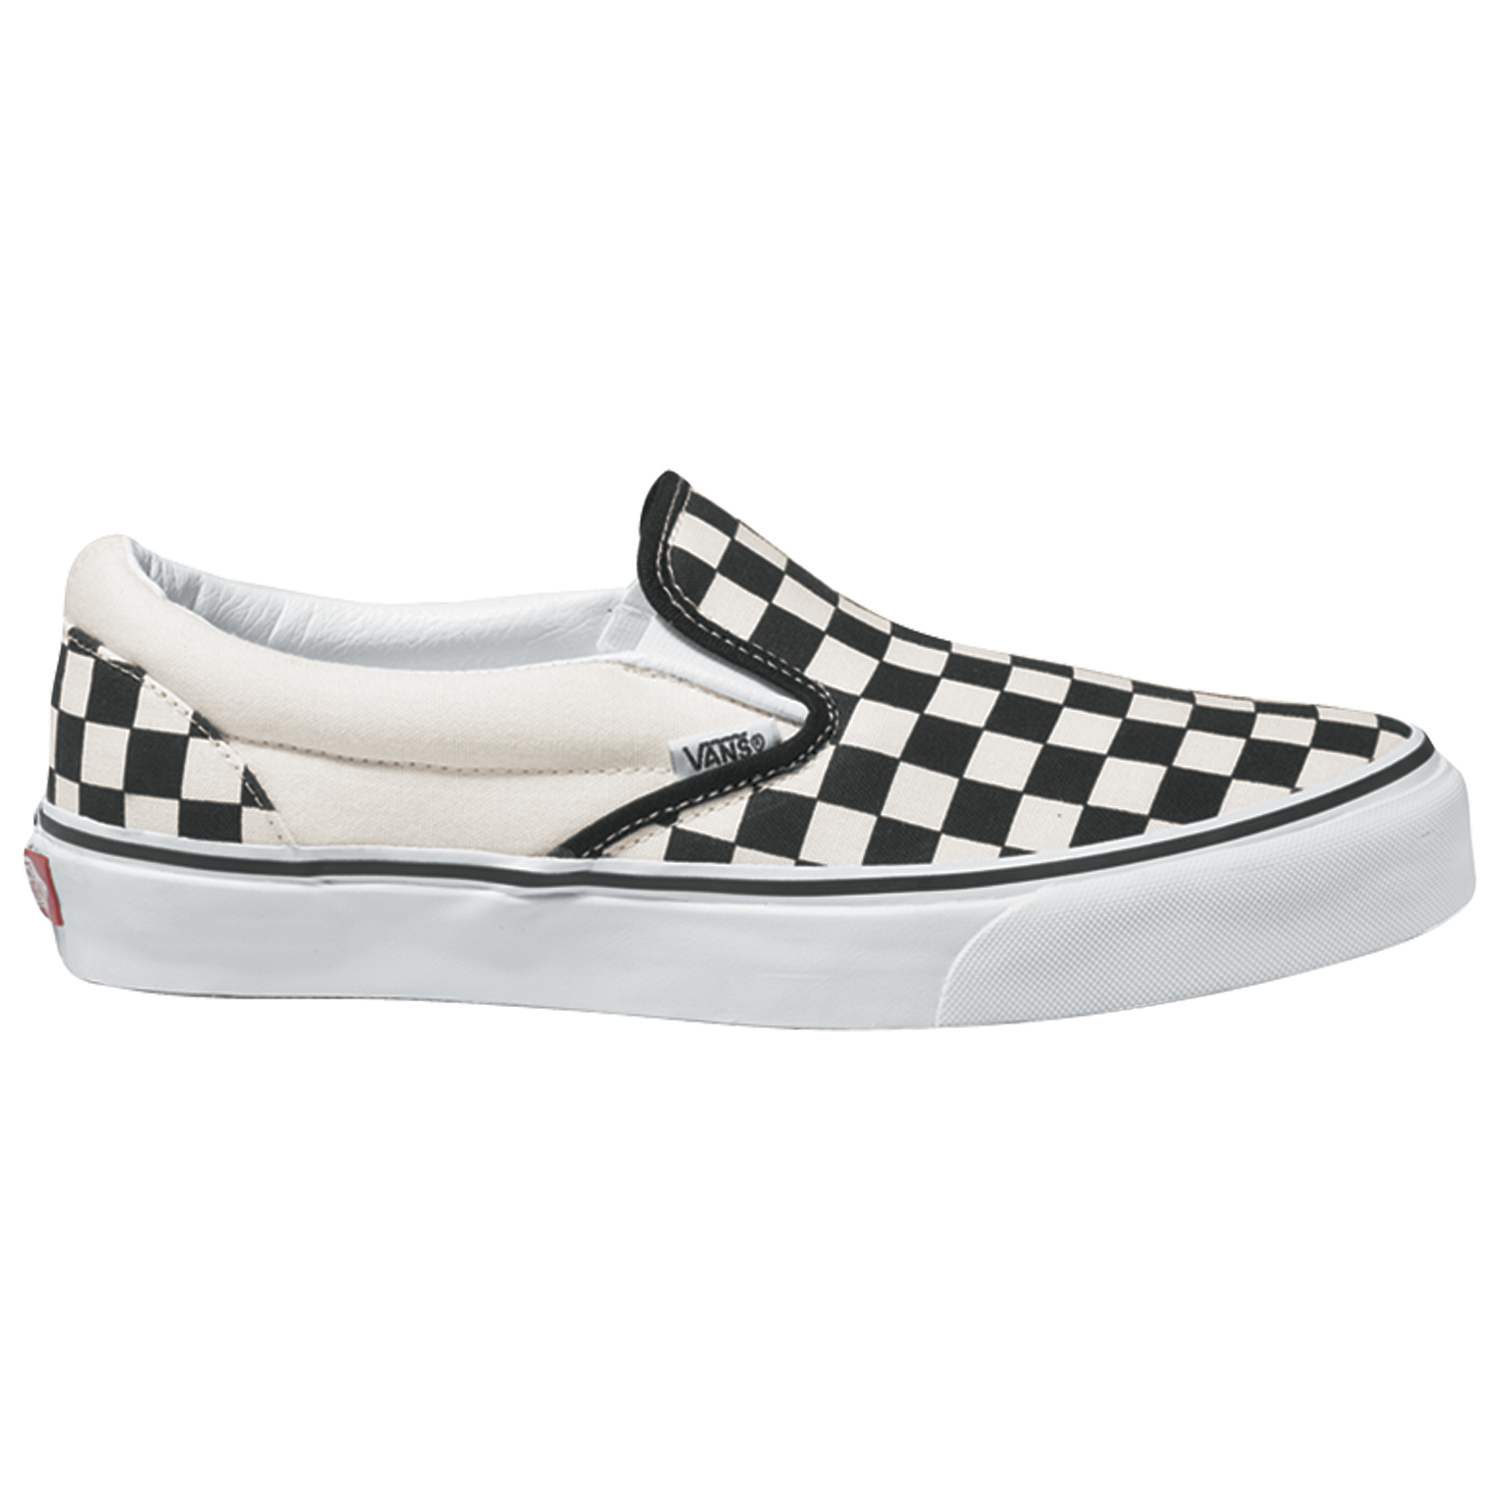 vans-classic-slip-on-black-white-checker-99-90